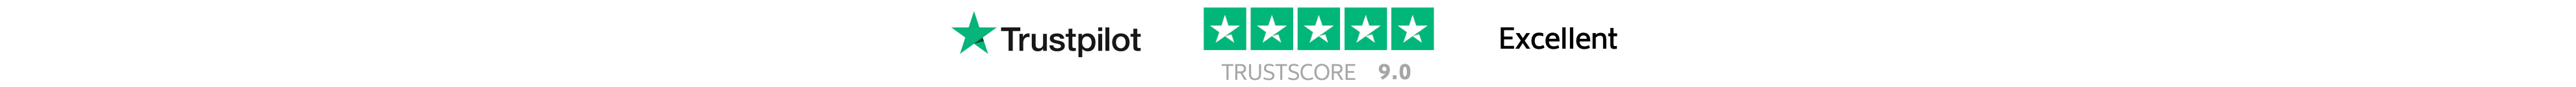 Silicone Lovers Trustpilot reviews